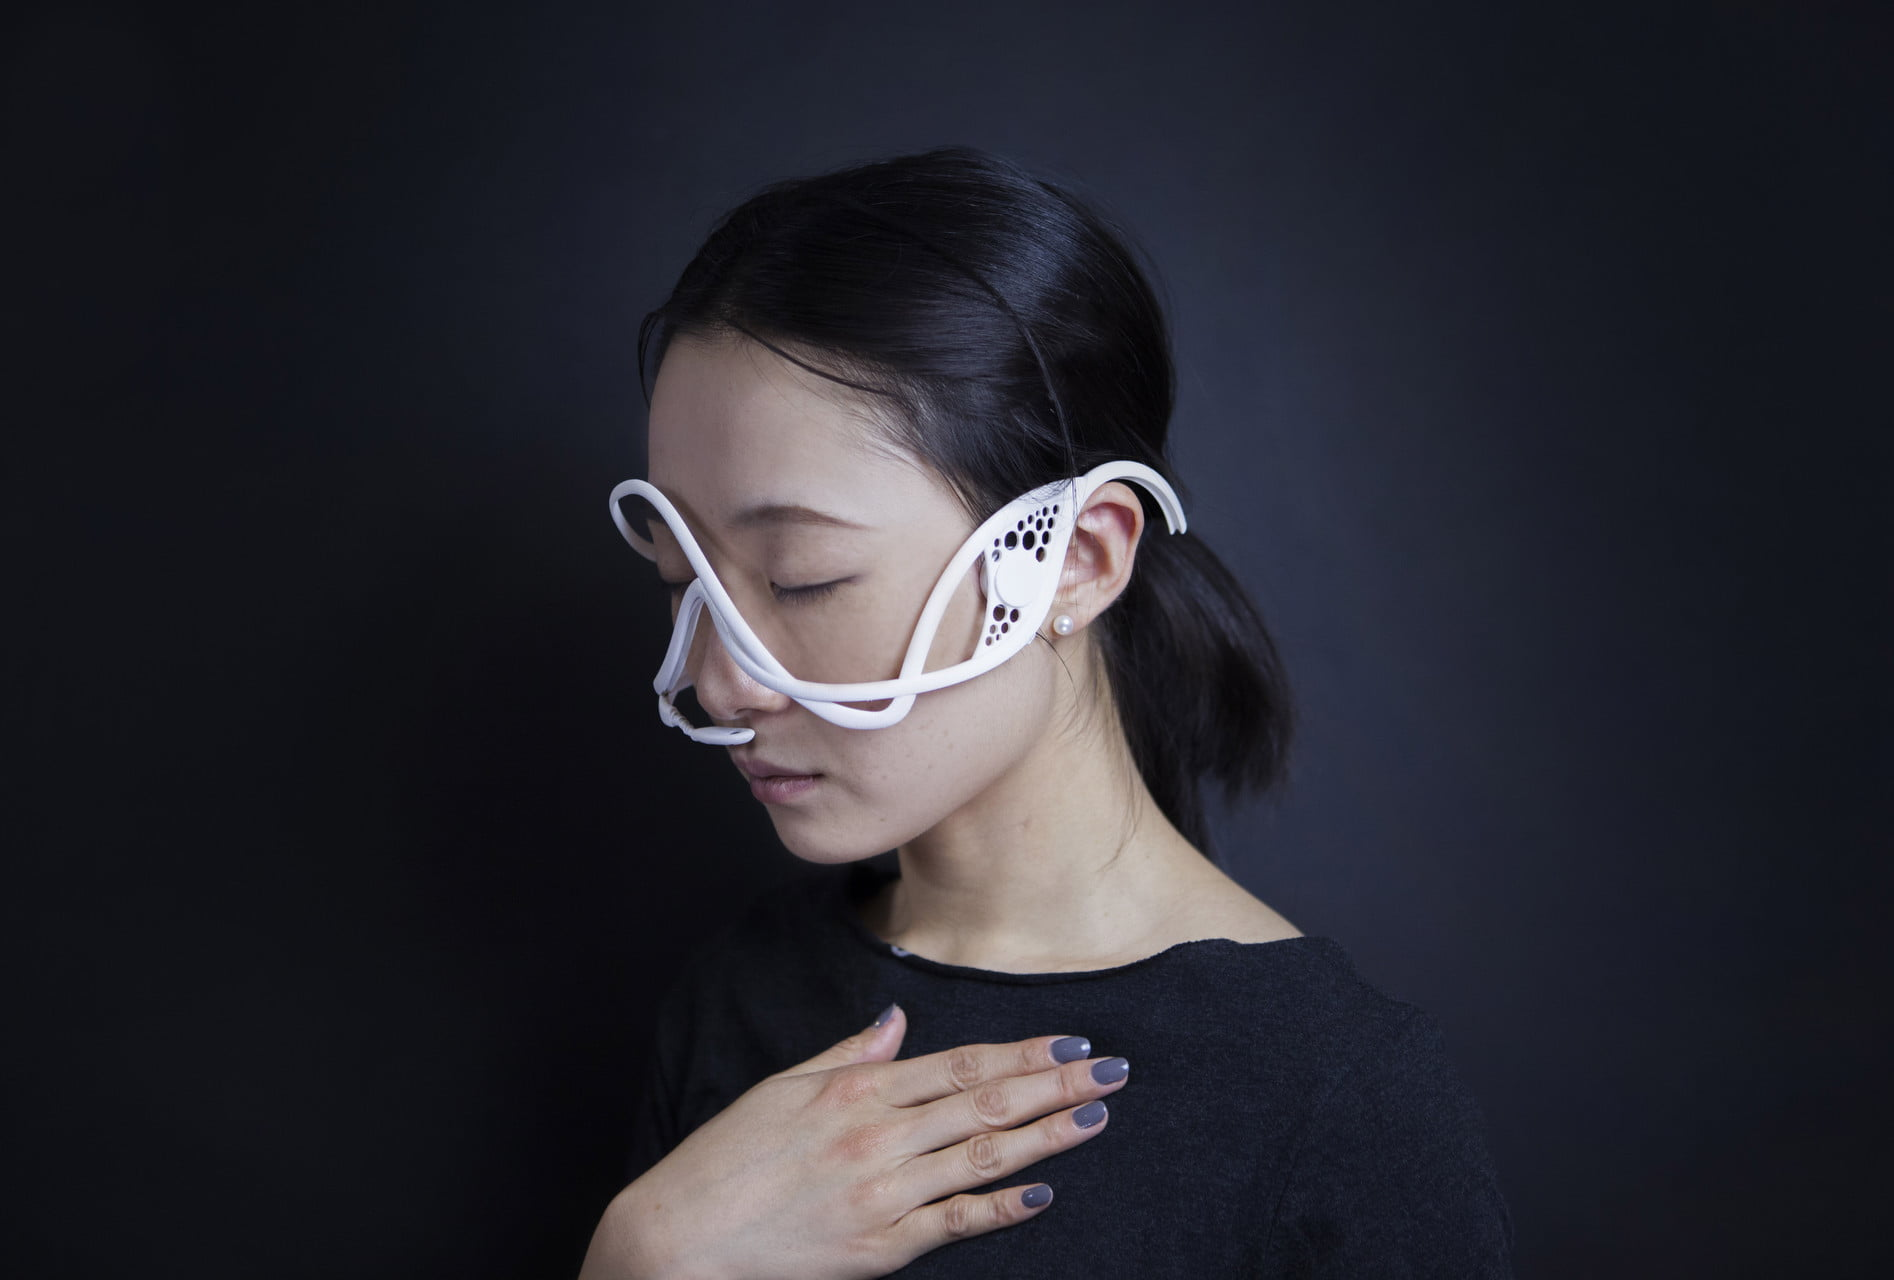 IMPAKT Festival 2019: Speculative Interfaces (Festivaltentoonstelling draagt de naam 'The Sound Of One Computer Thinking')